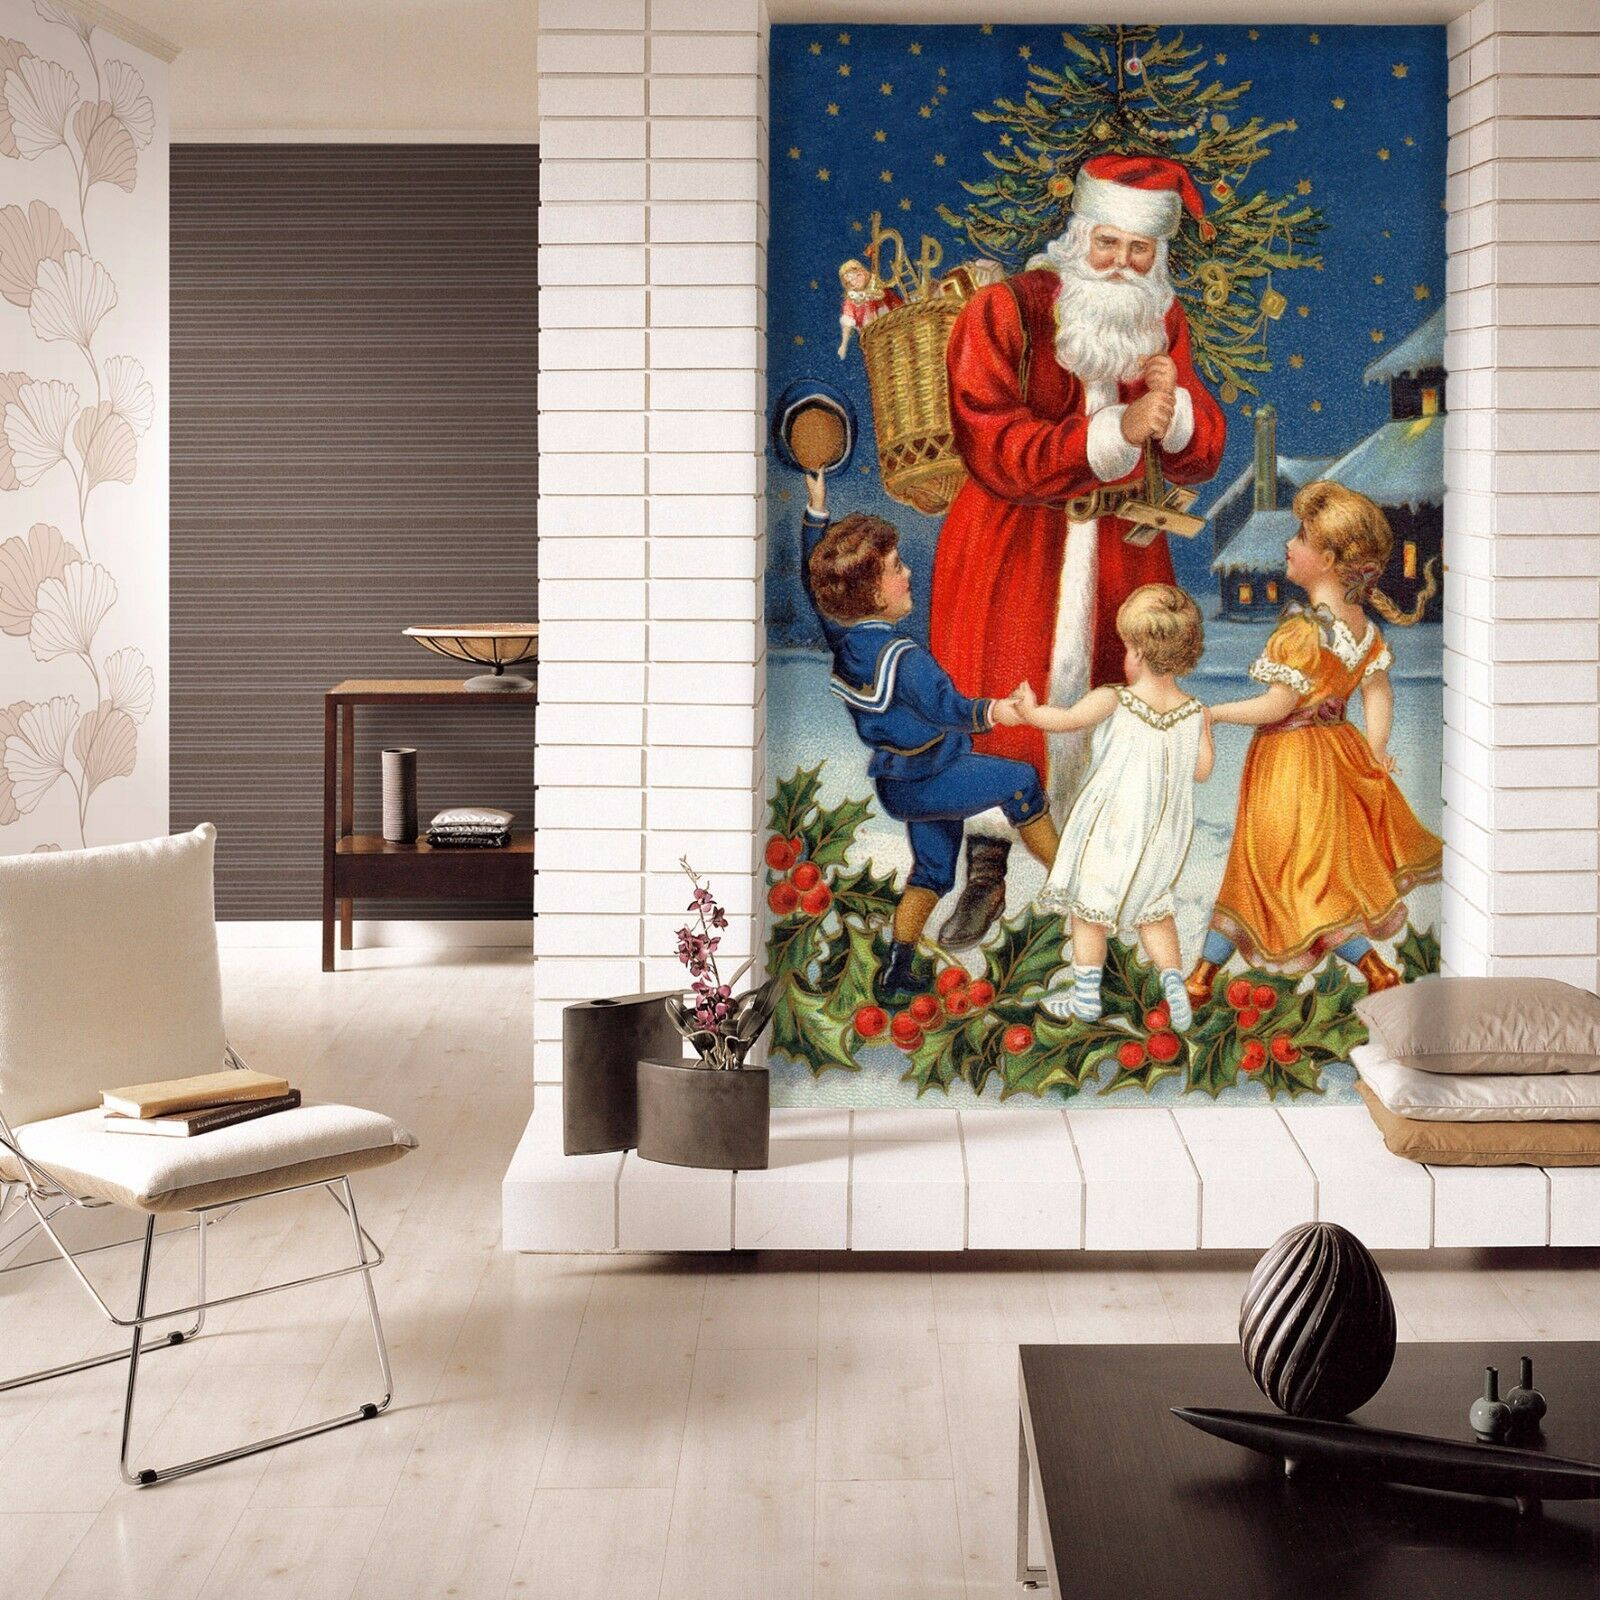 3D Santa Claus 52 Wallpaper Murals Wall Print Wallpaper Mural AJ WALL AU